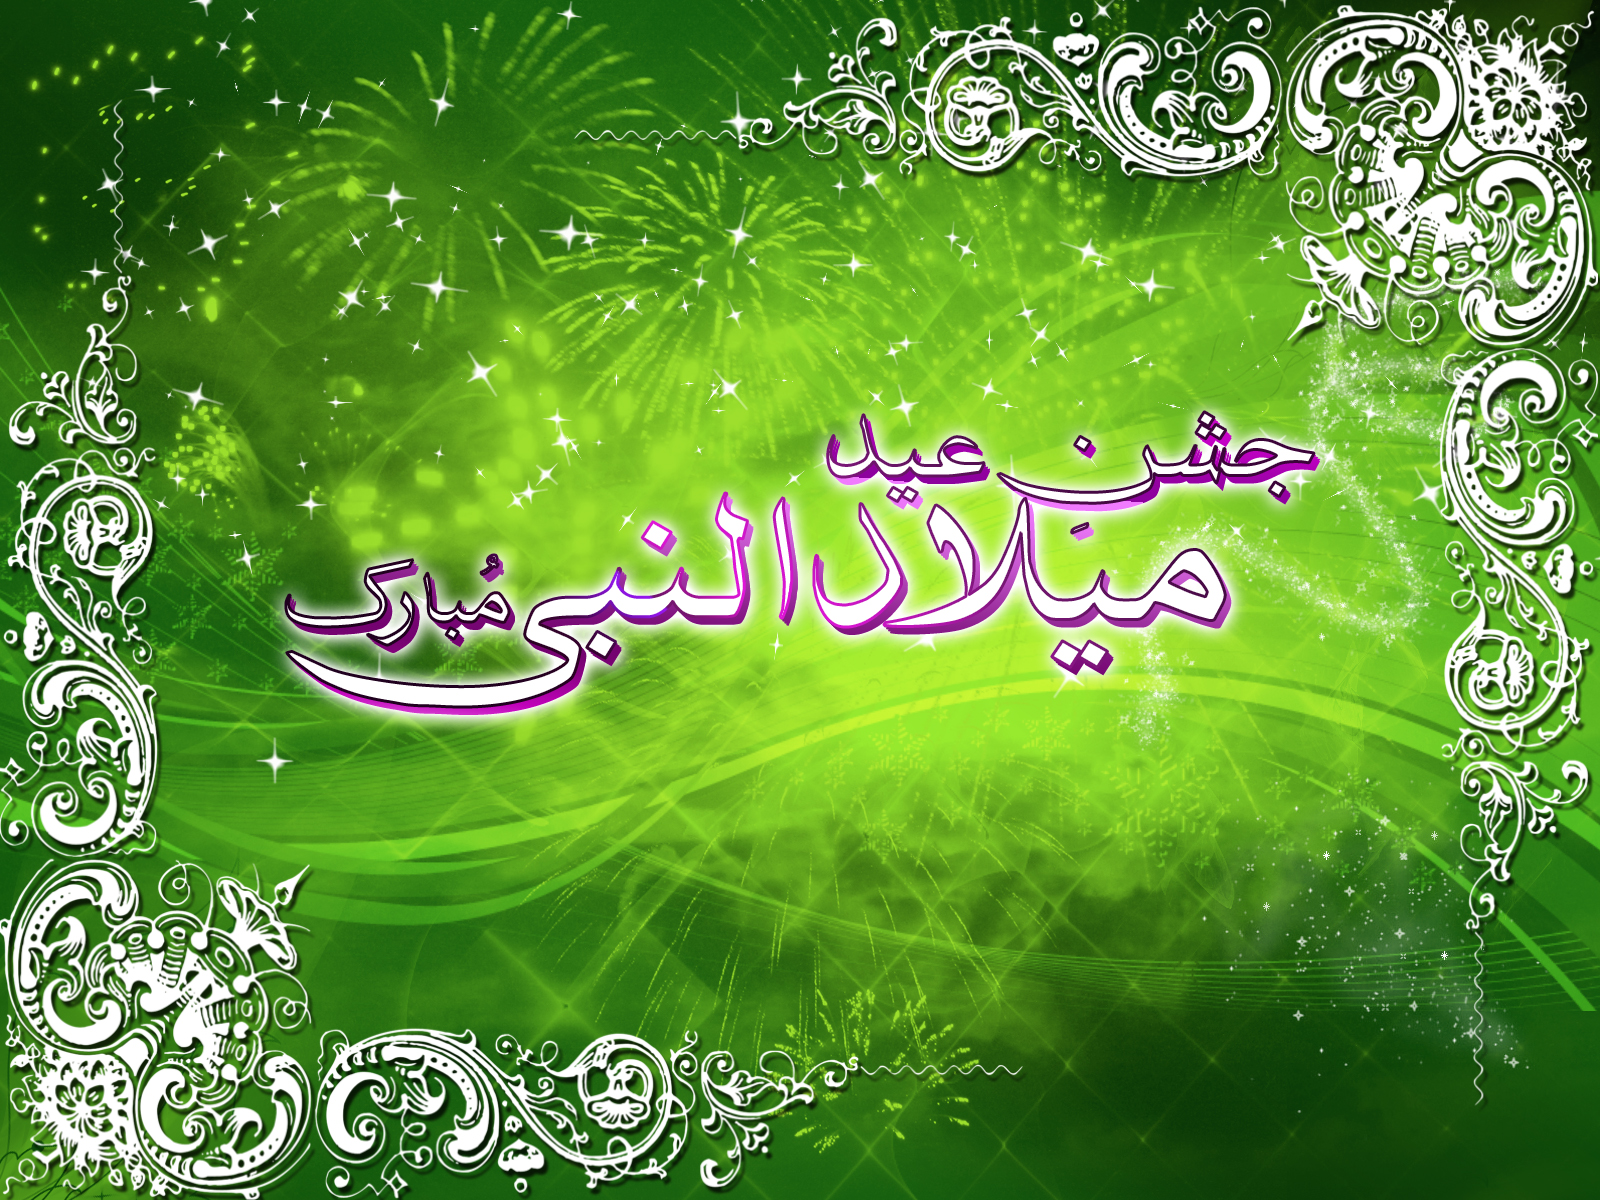 Advance Eid Milad-un Nabi SMS Messages Images Wishes Whatsapp Status FB DP Pics 2015